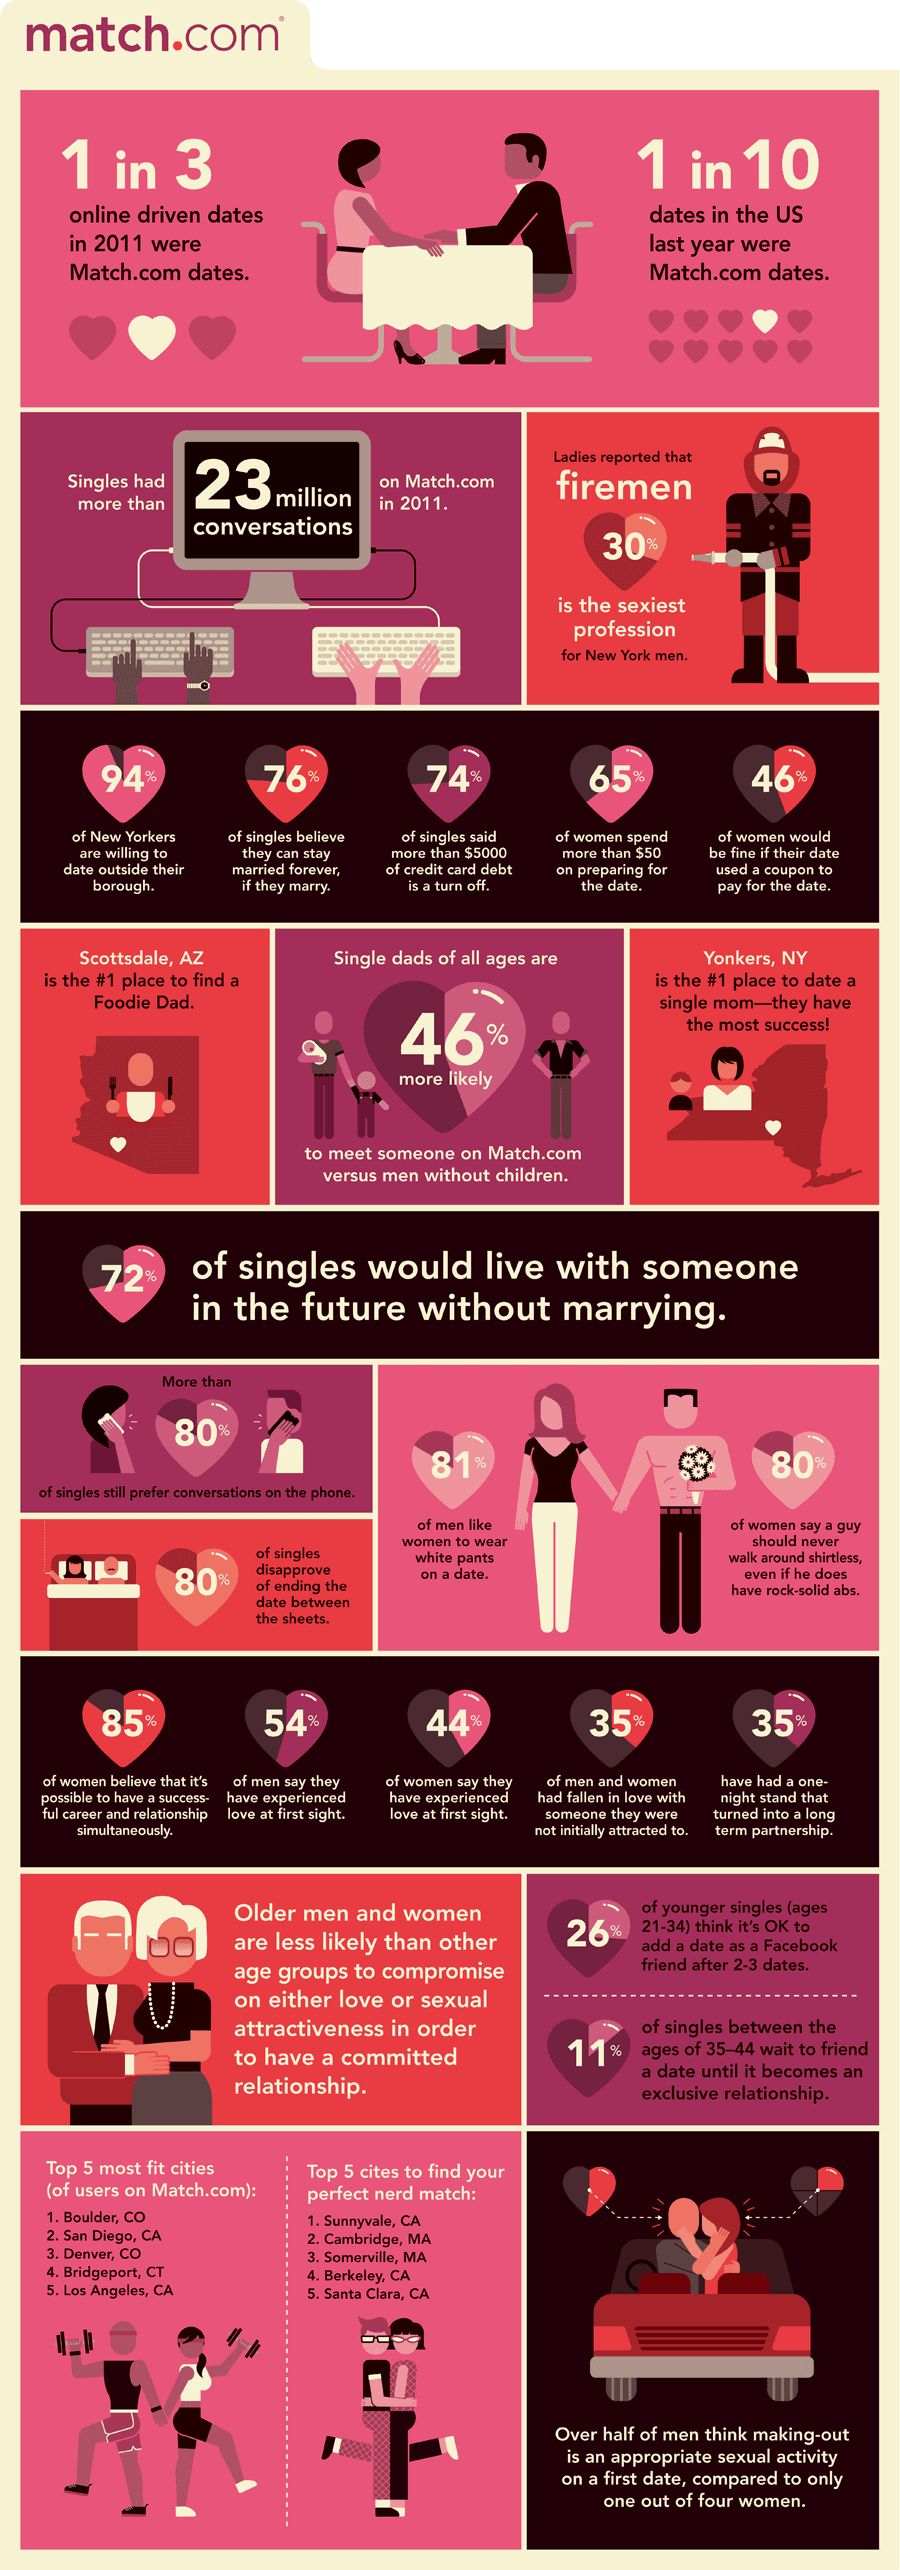 dating etiquette on match com